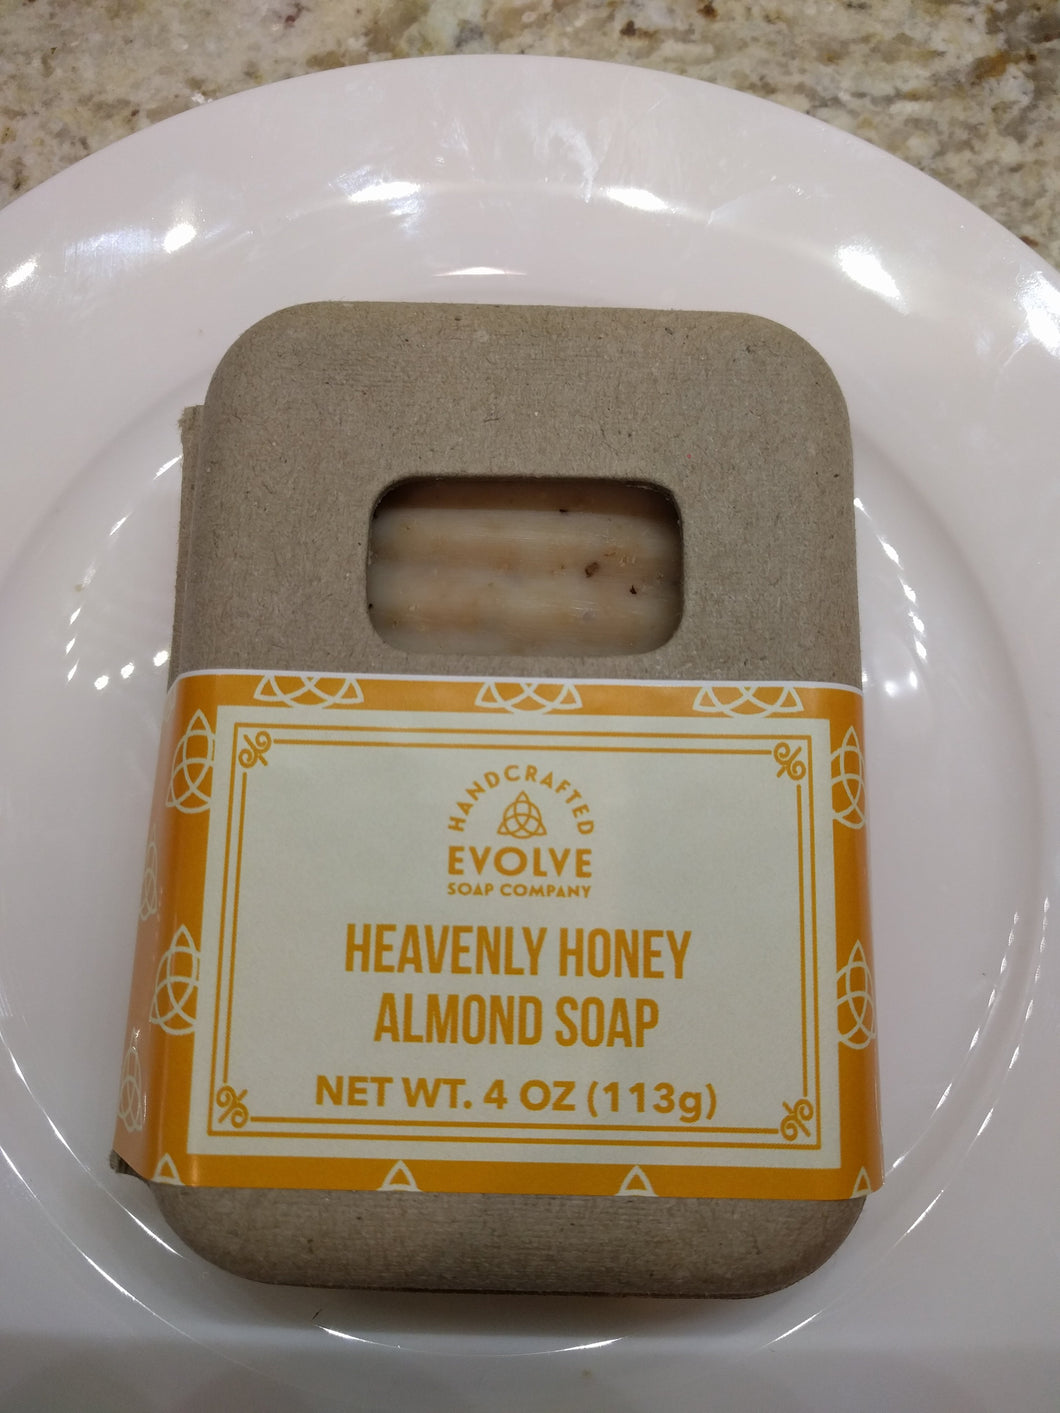 Heavenly Honey Almond Soap